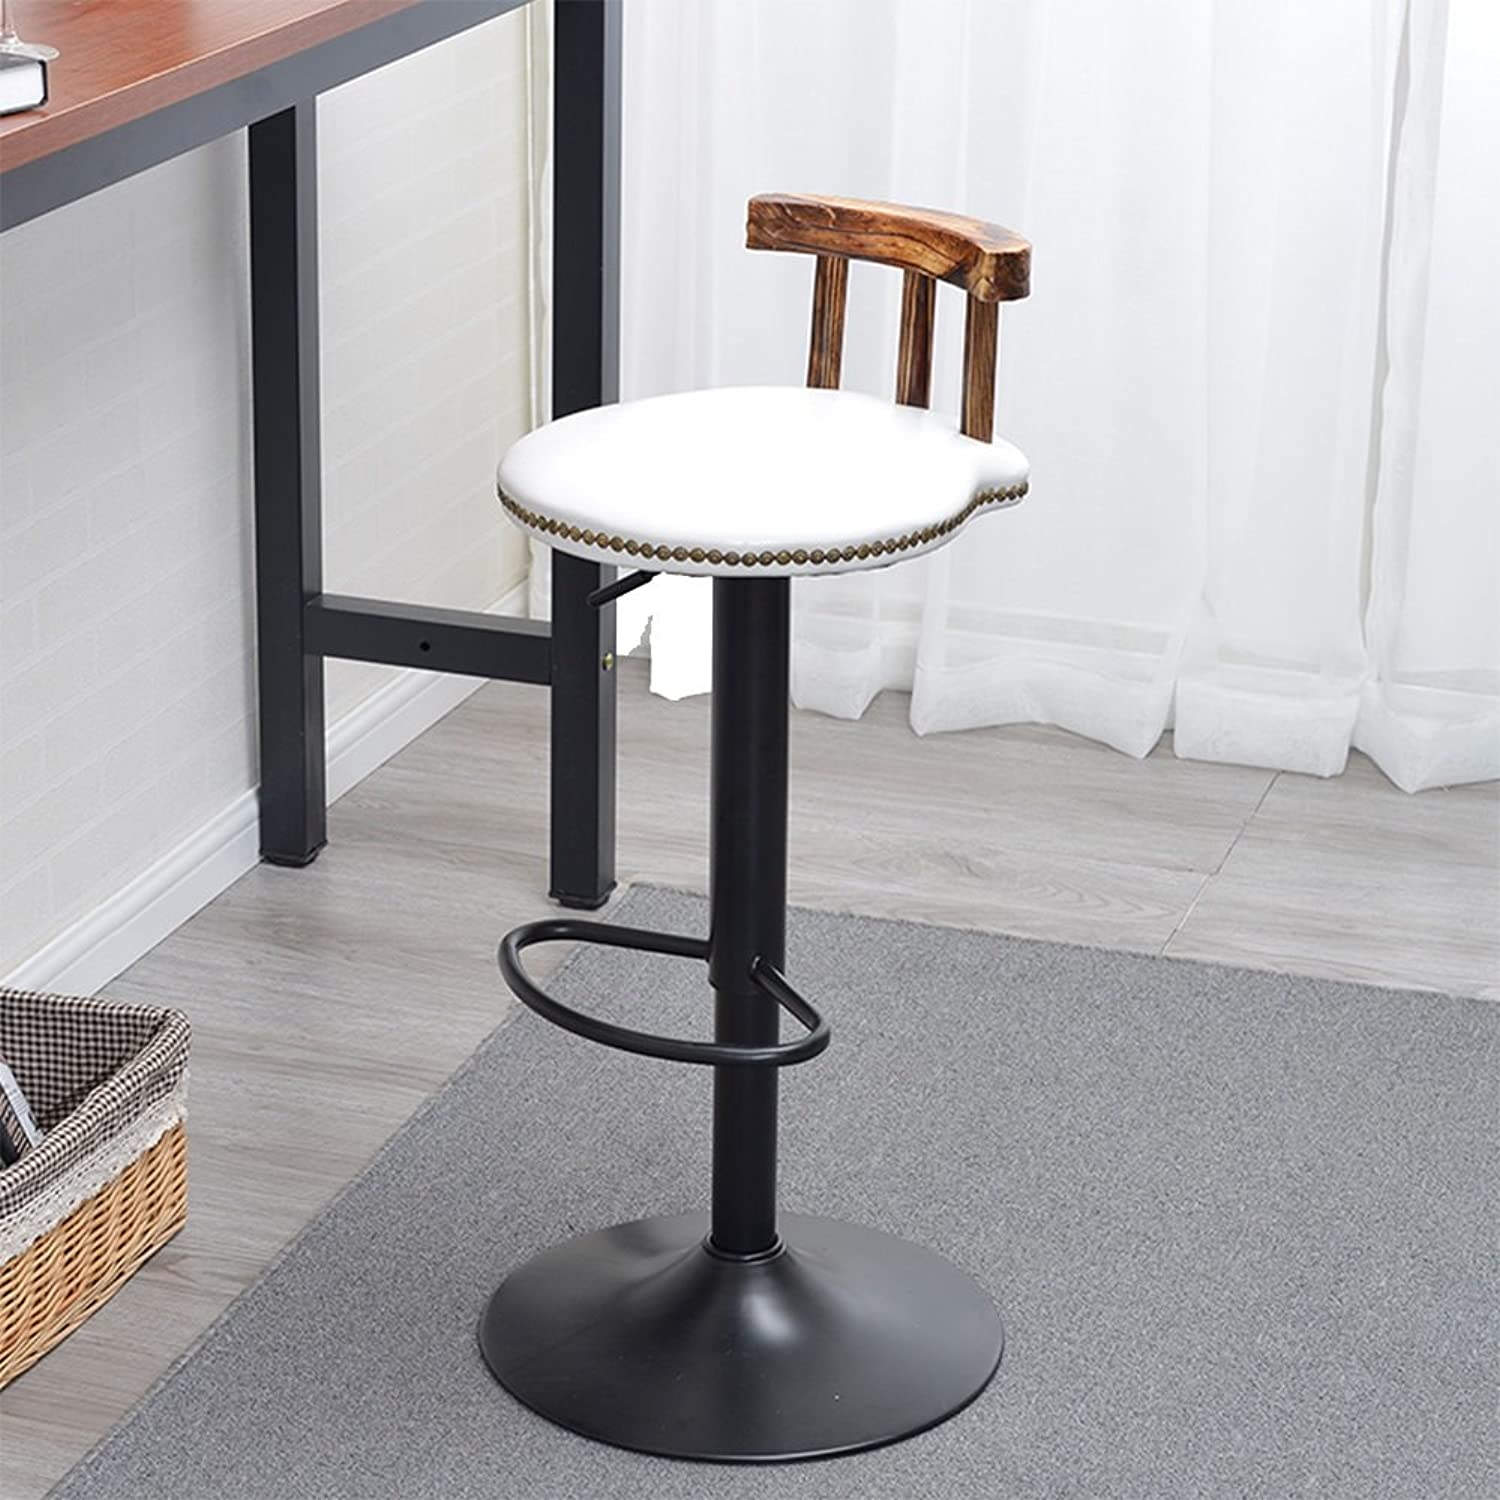 High Stool Set of 2 White Kitchen Breakfast Bar Stools Adjustable Height Seat Swivel Stool (color   10)